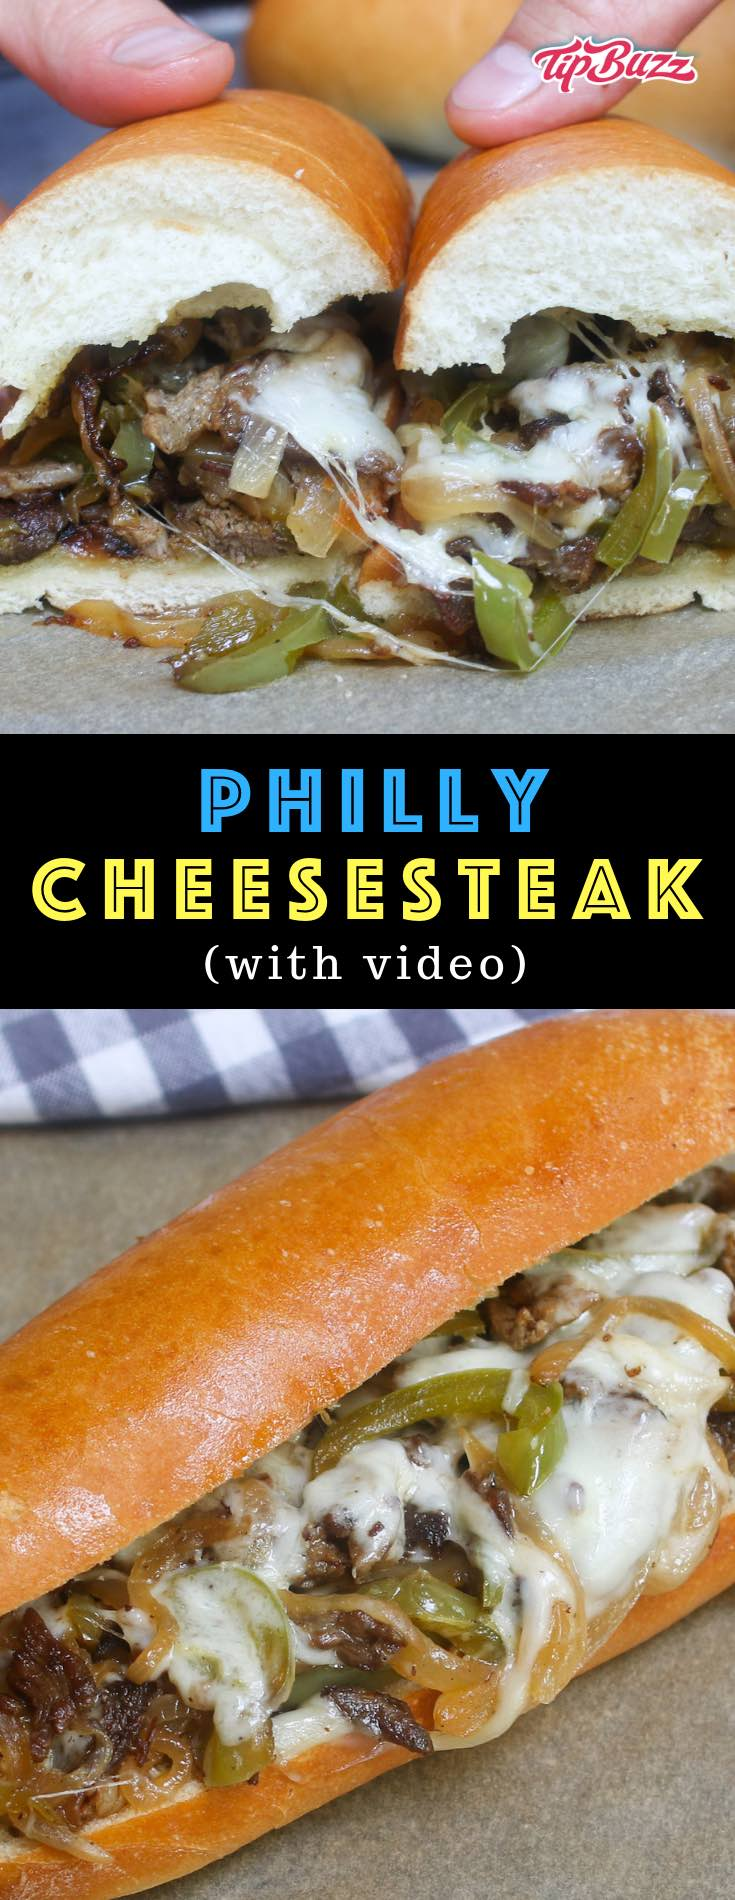 Philly cheesesteak recipe is made with thinly sliced rib-eye beef and sautéed onions, topped with ooey, gooey, melted provolone or Cheez Whiz, and served on a soft yet crusty hoagie roll!